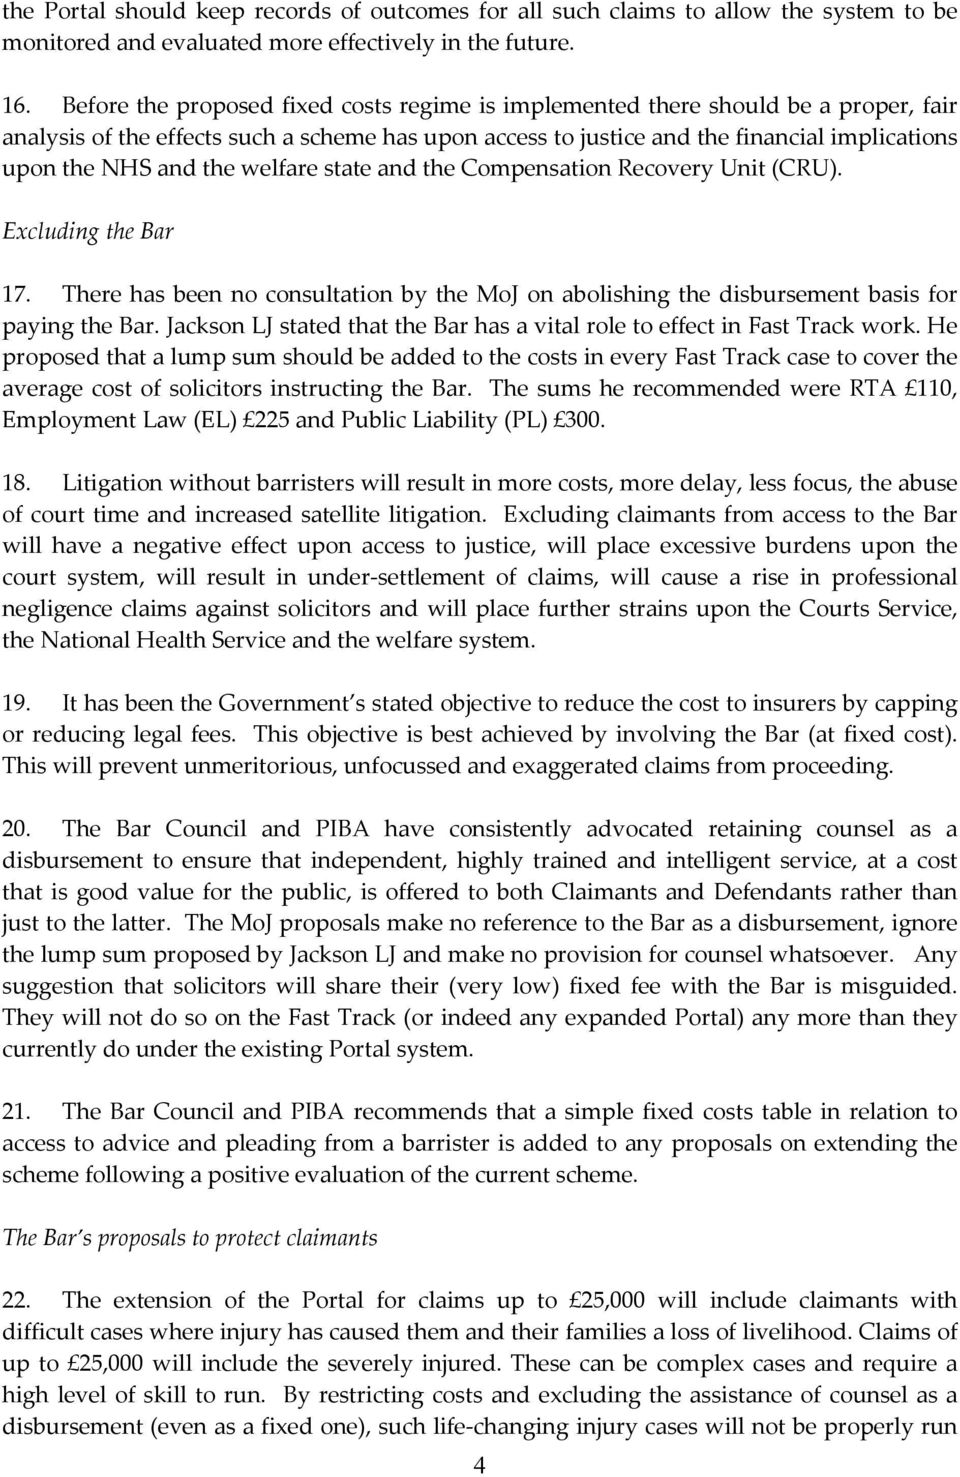 the welfare state and the Compensation Recovery Unit (CRU). Excluding the Bar 17. There has been no consultation by the MoJ on abolishing the disbursement basis for paying the Bar.